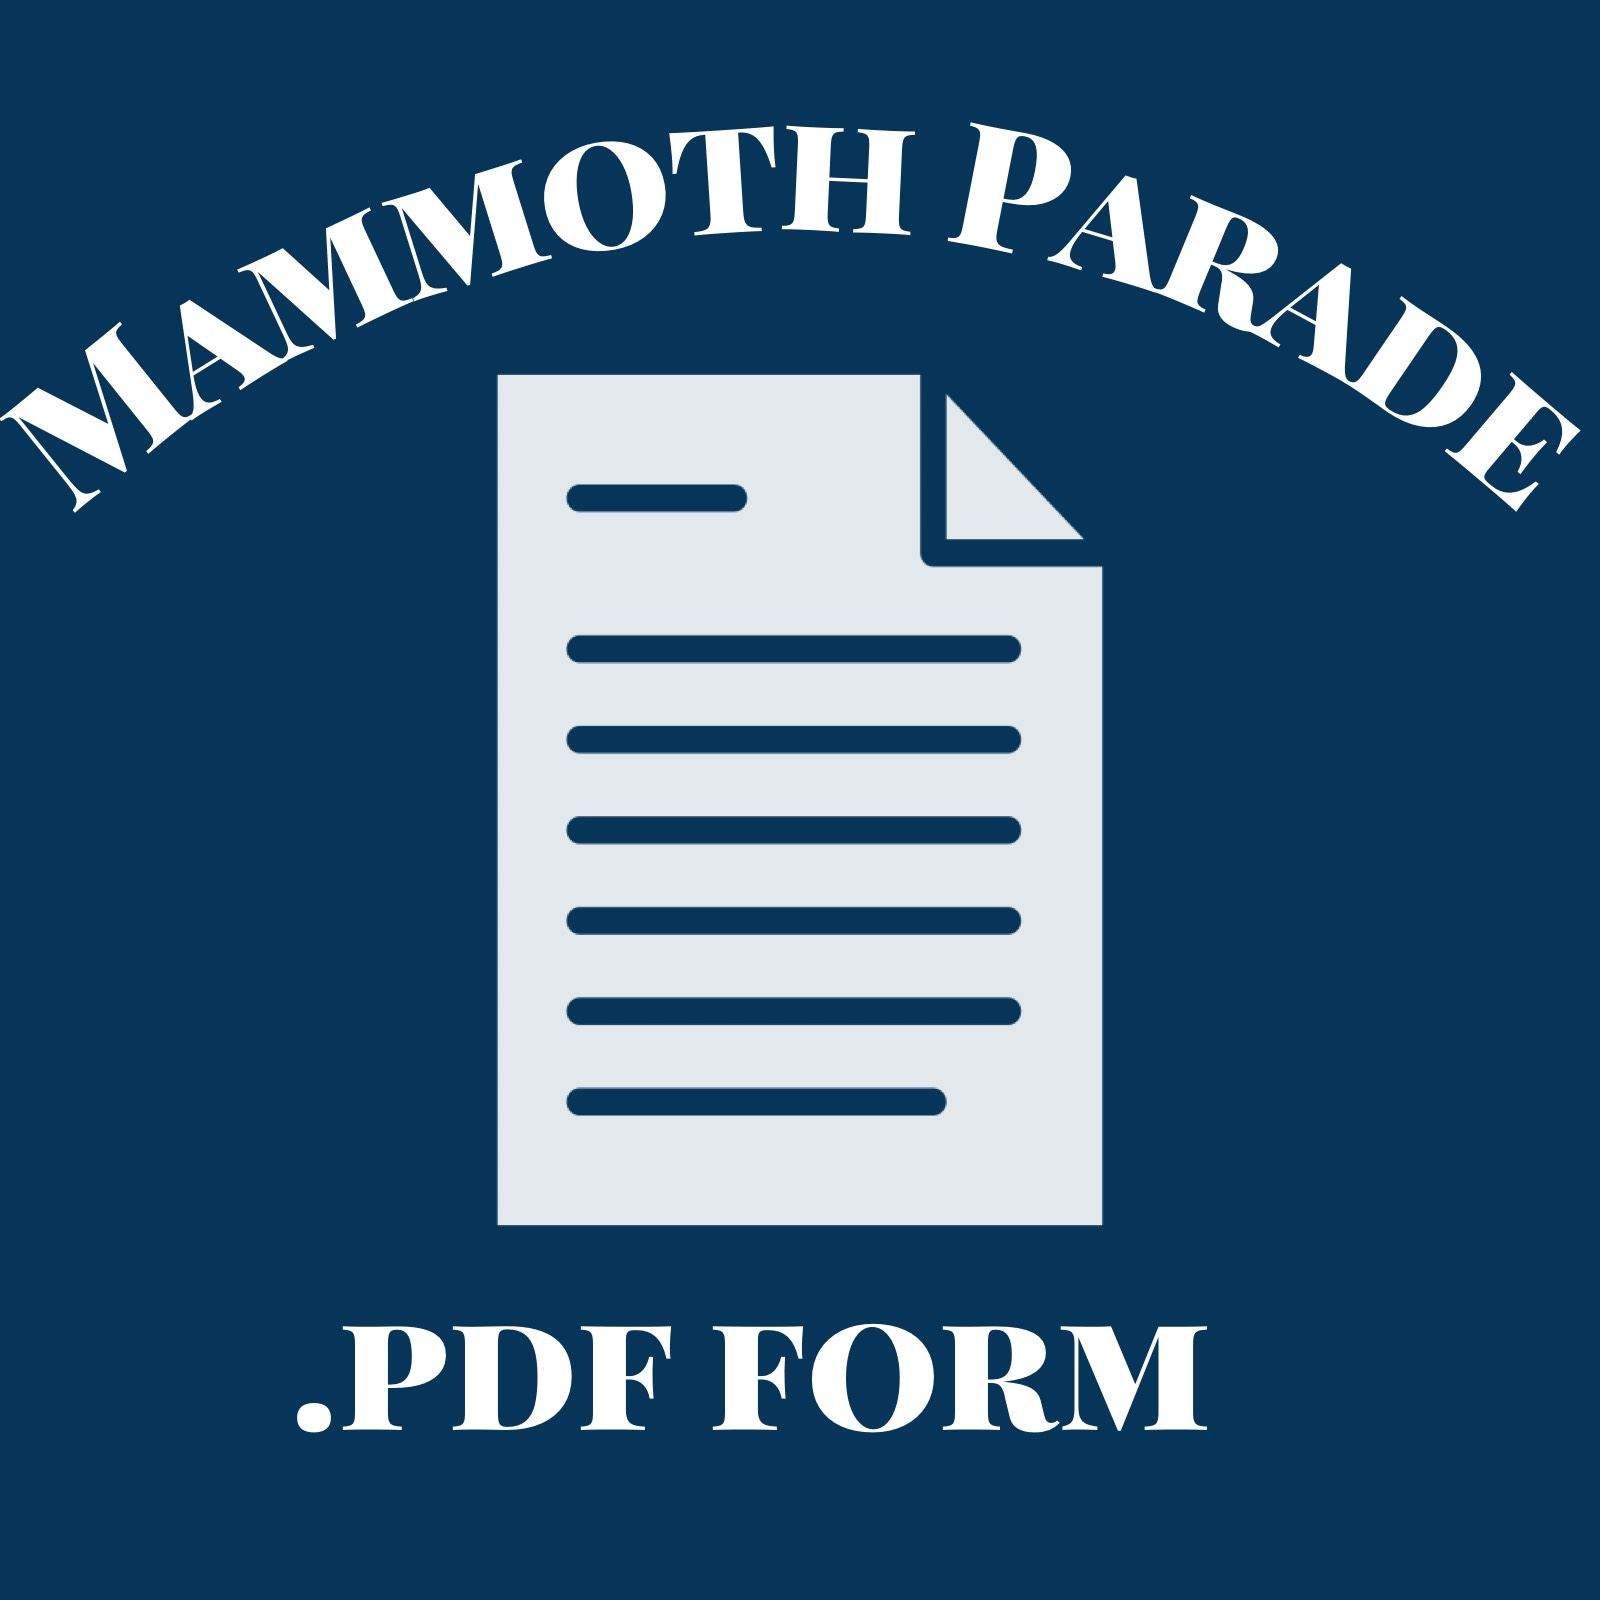 Mammoth Parade .pdf format button